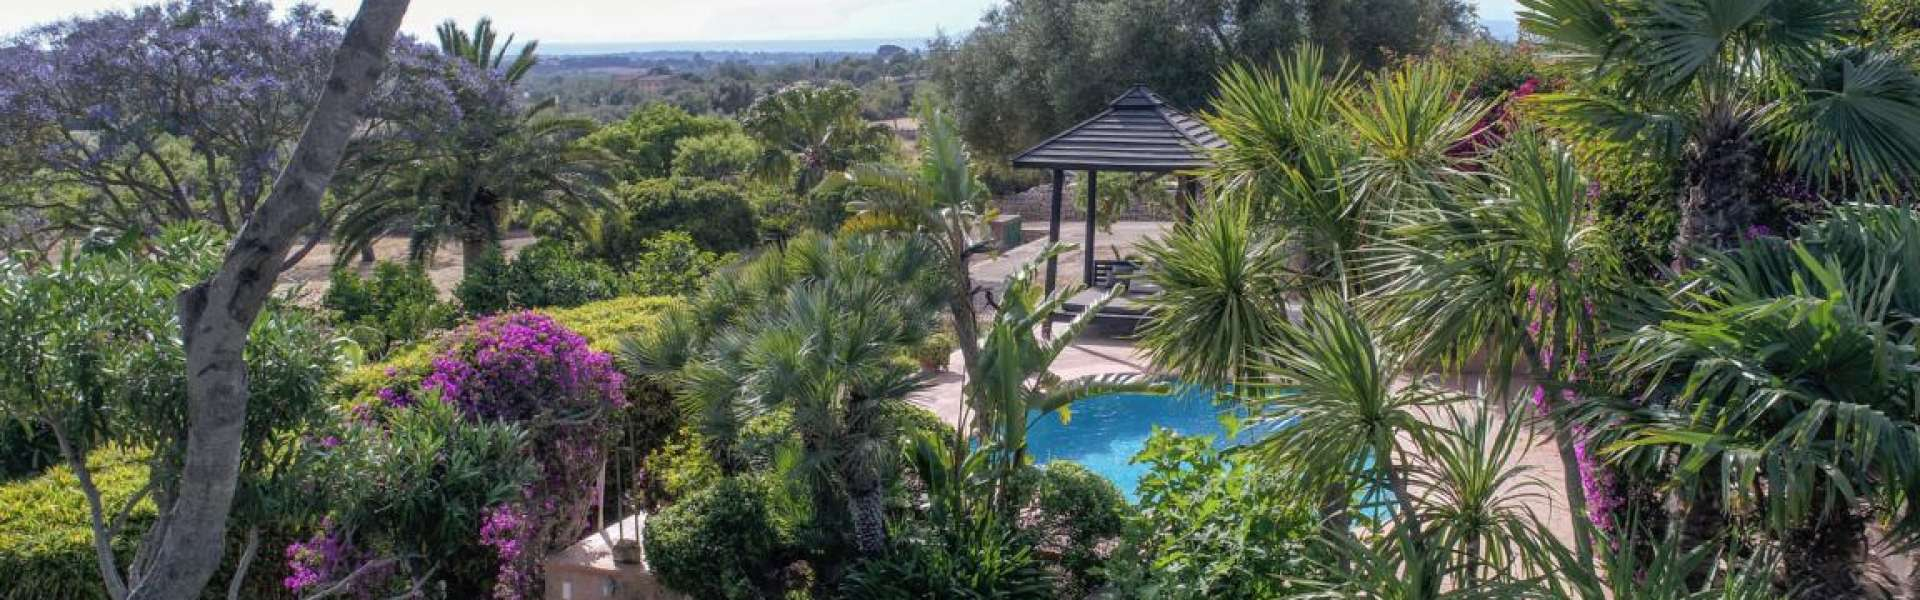 Authentic property in a dreamlike location close to the sea